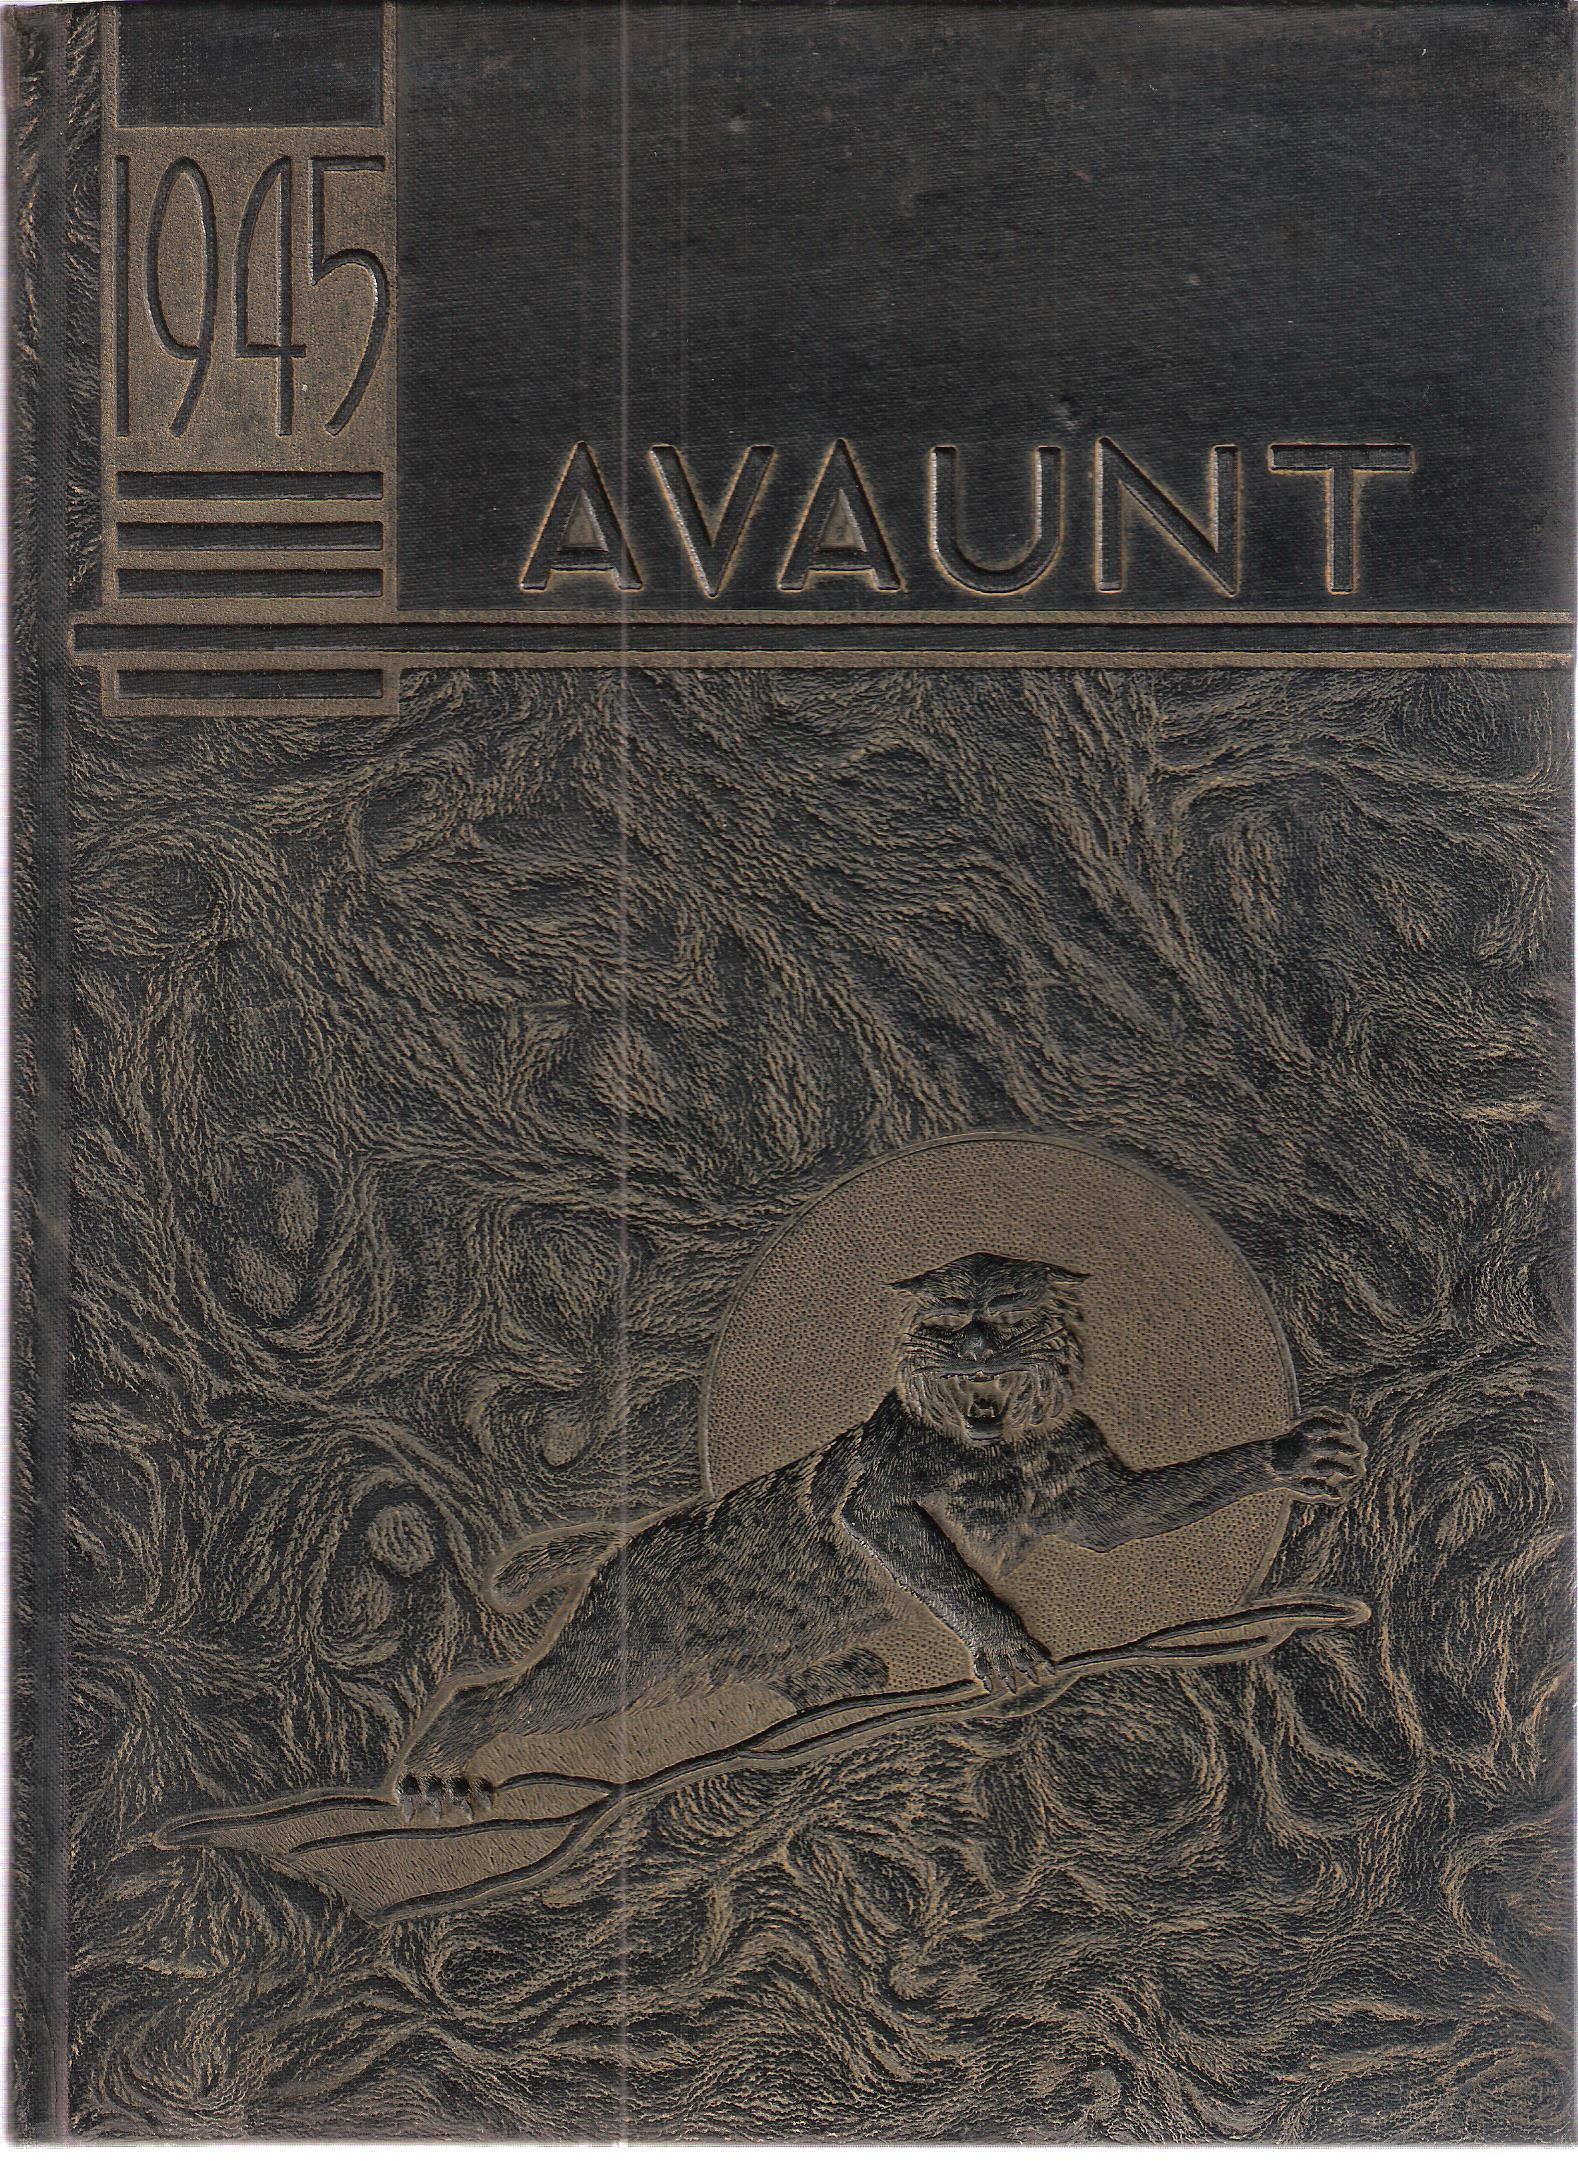 1945 Avaunt cover